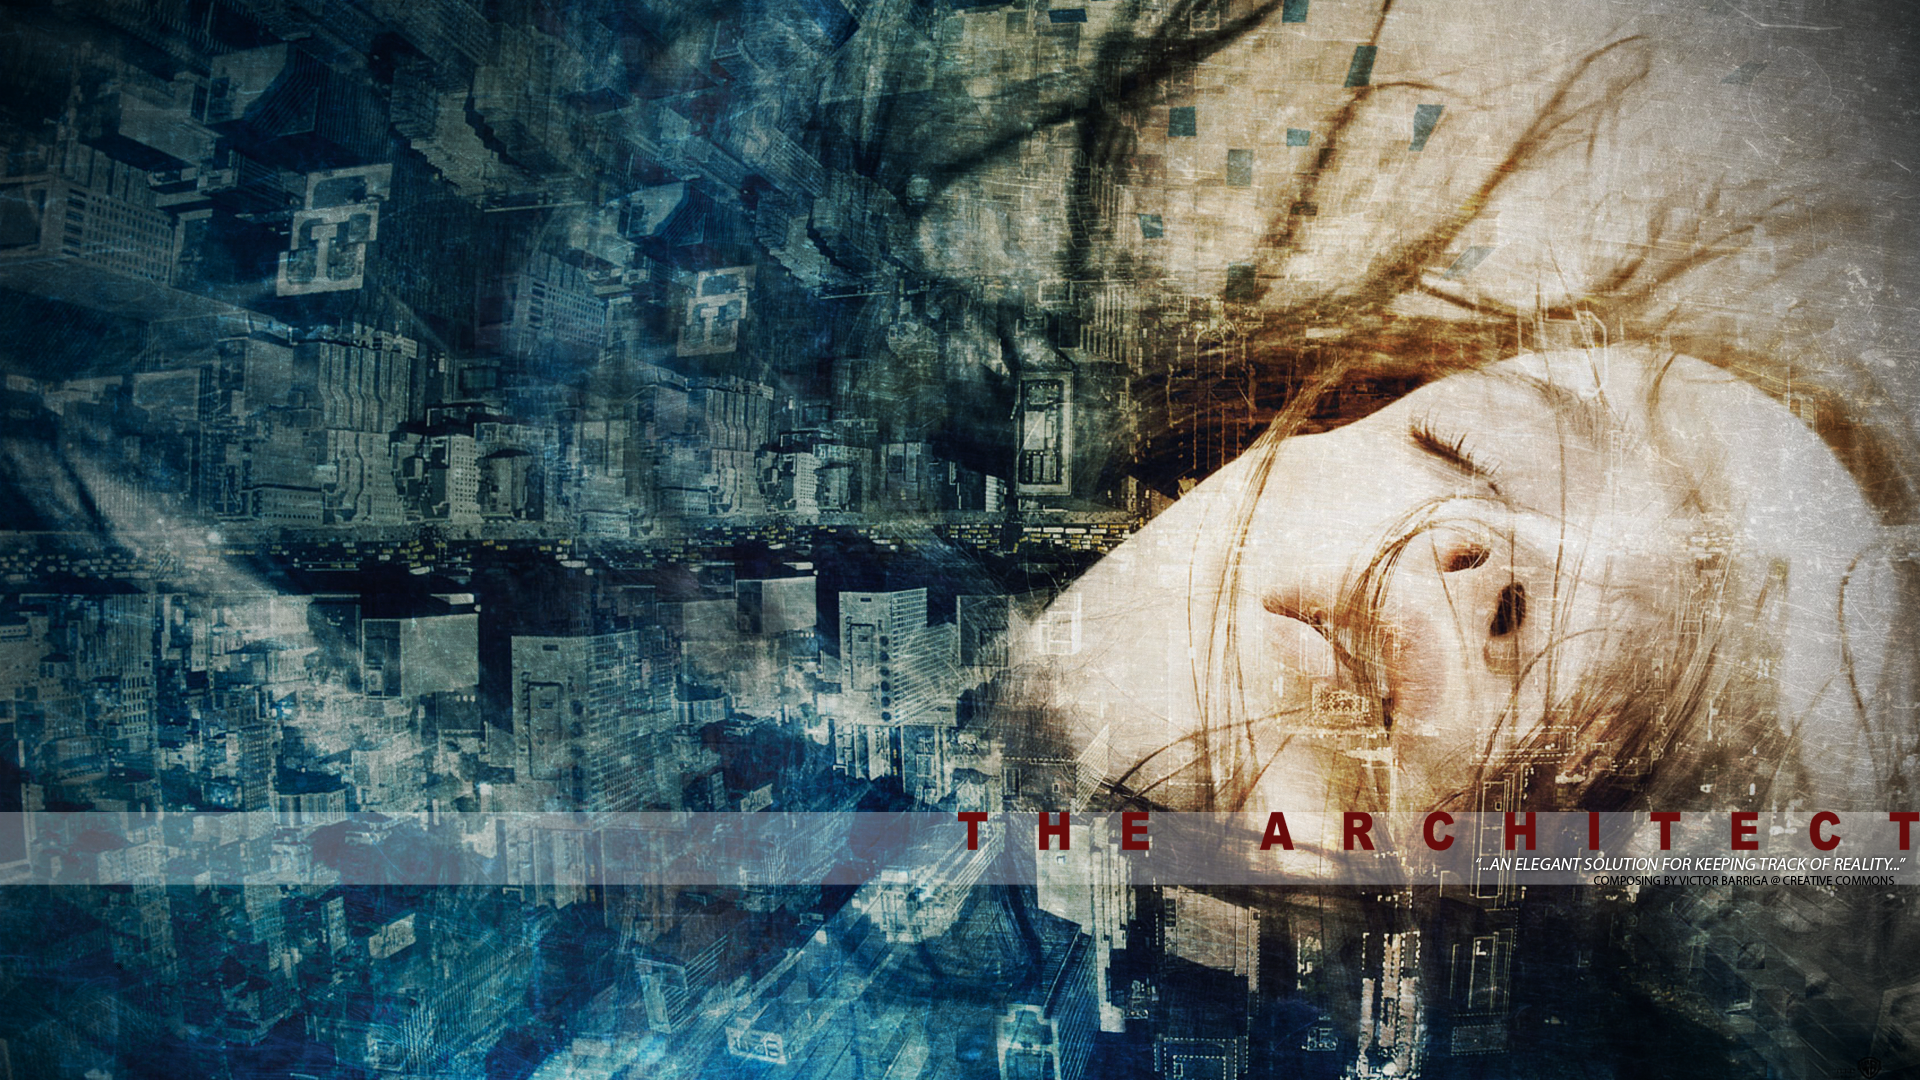 the_architect_1920x1080.png